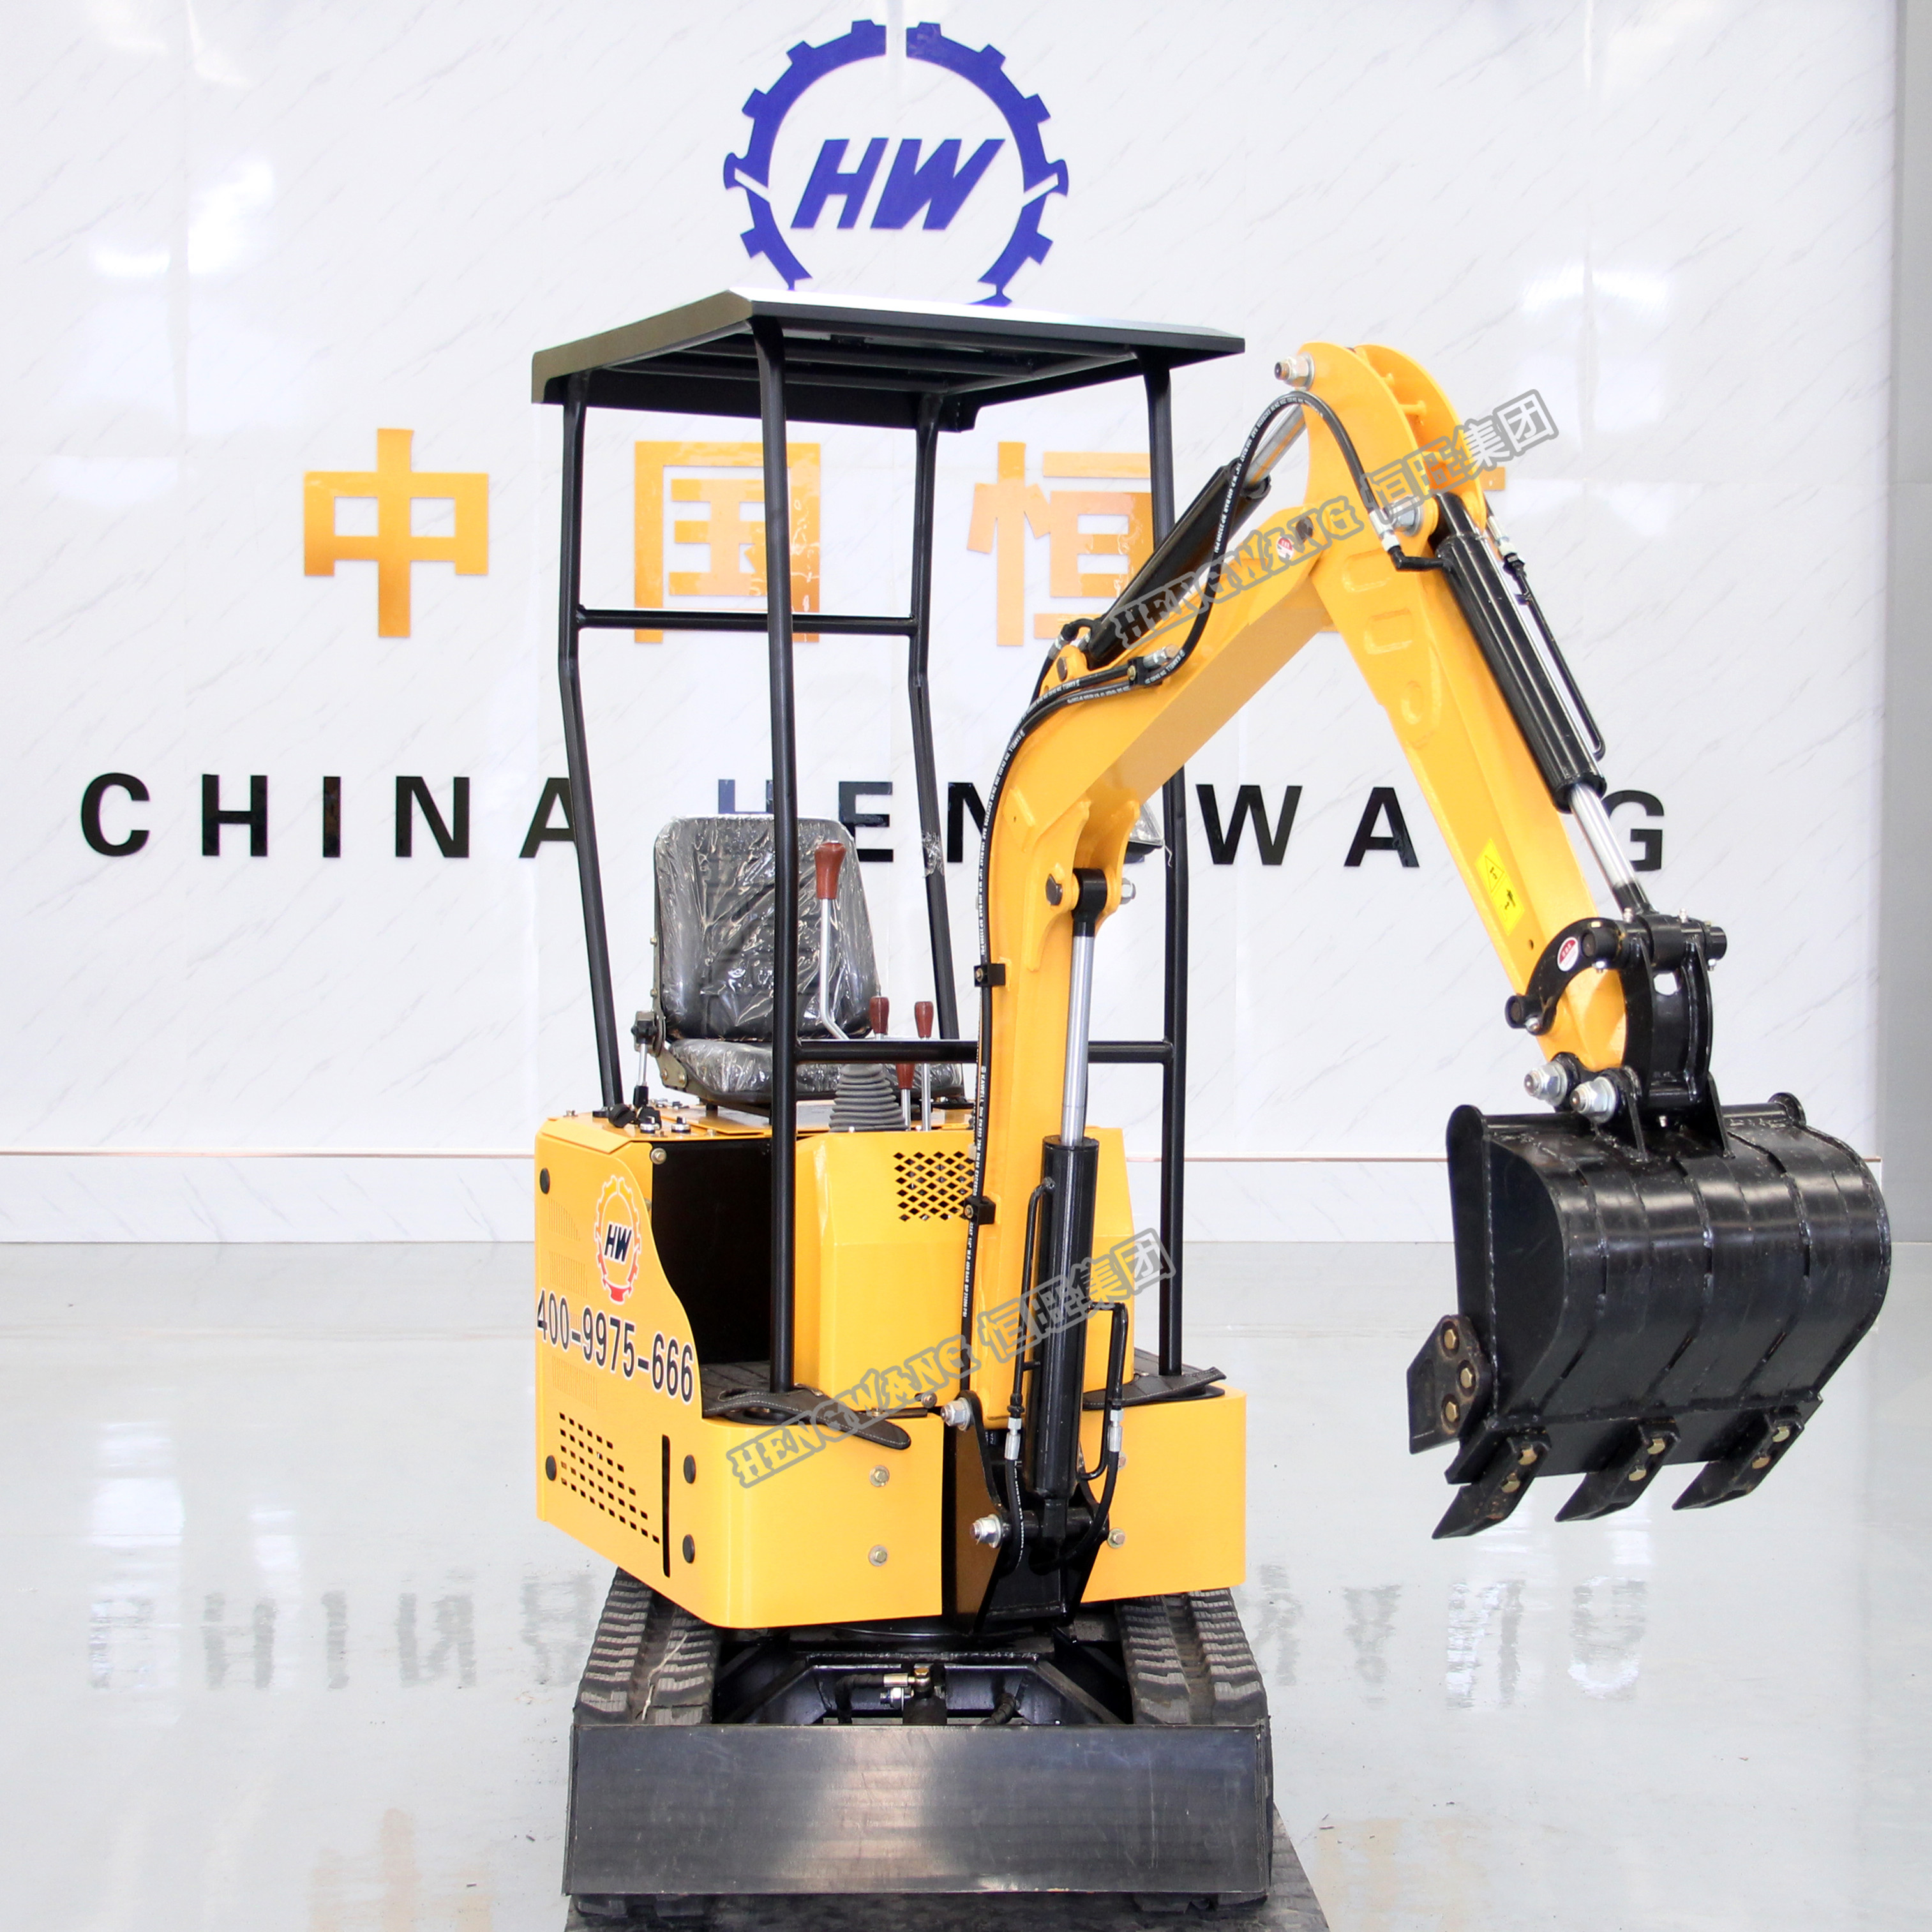 China HW-<strong>W10</strong> 1 Ton 11.7 HP Micro Mini Crawler Digger Excavator for Sale